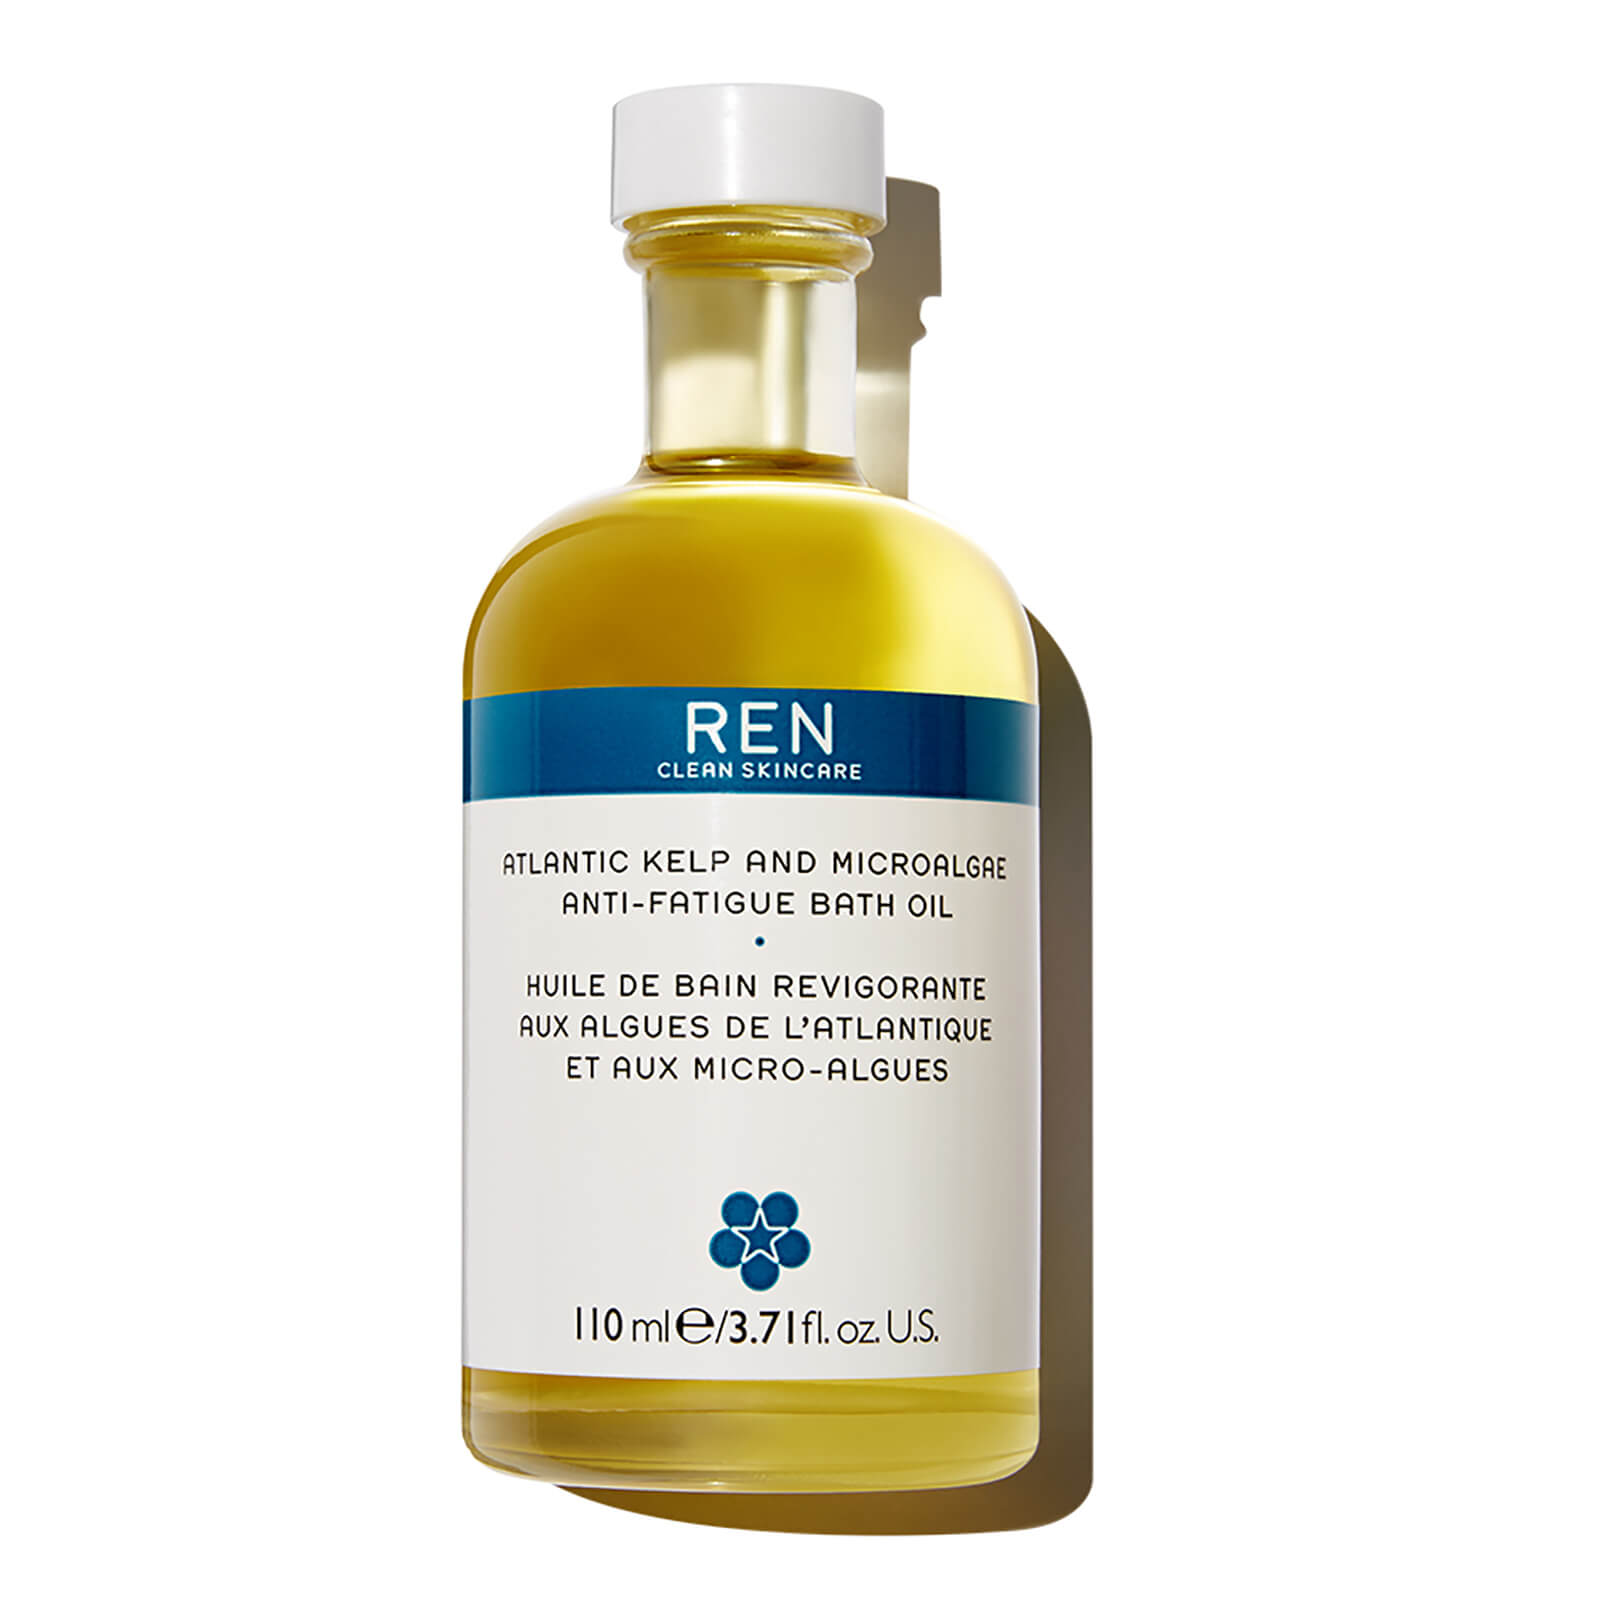 REN Clean Skincare Skincare Atlantic Kelp and Microalgae Anti-Fatigue Bath Oil 110ml